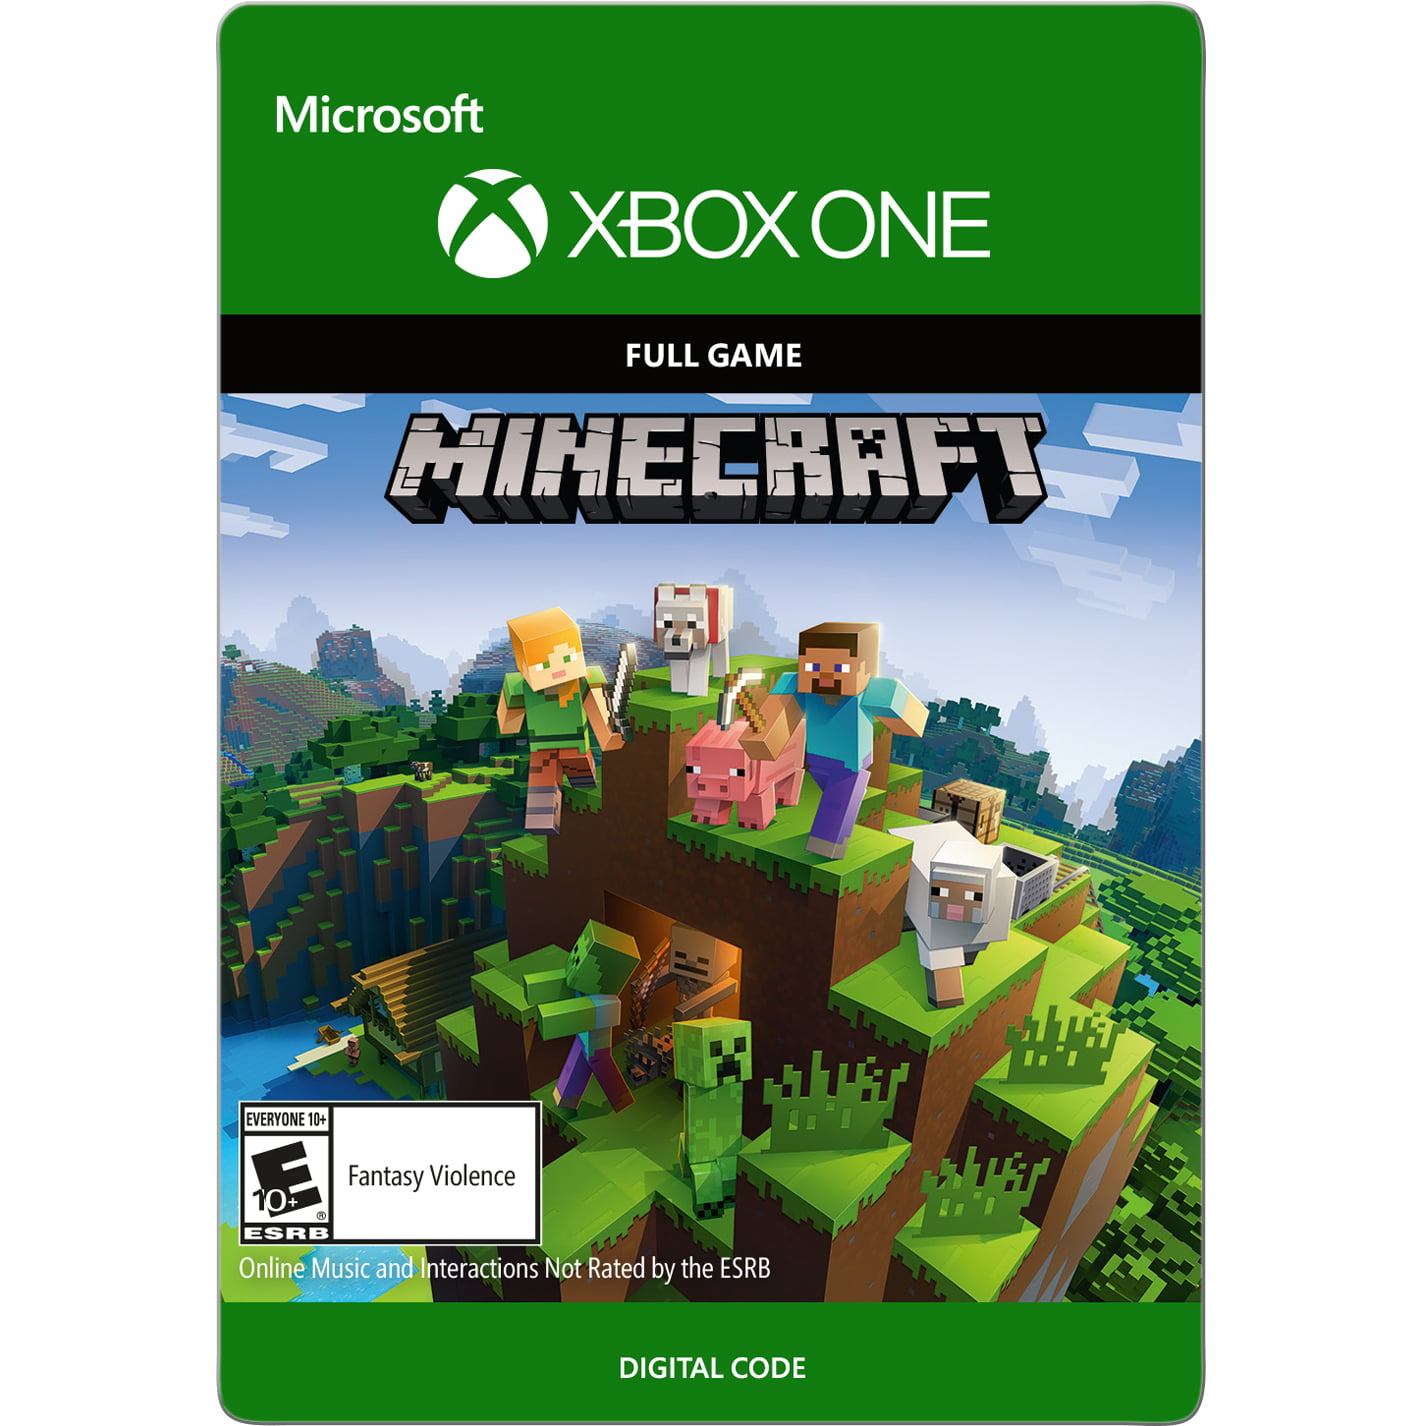 game download keys xbox one